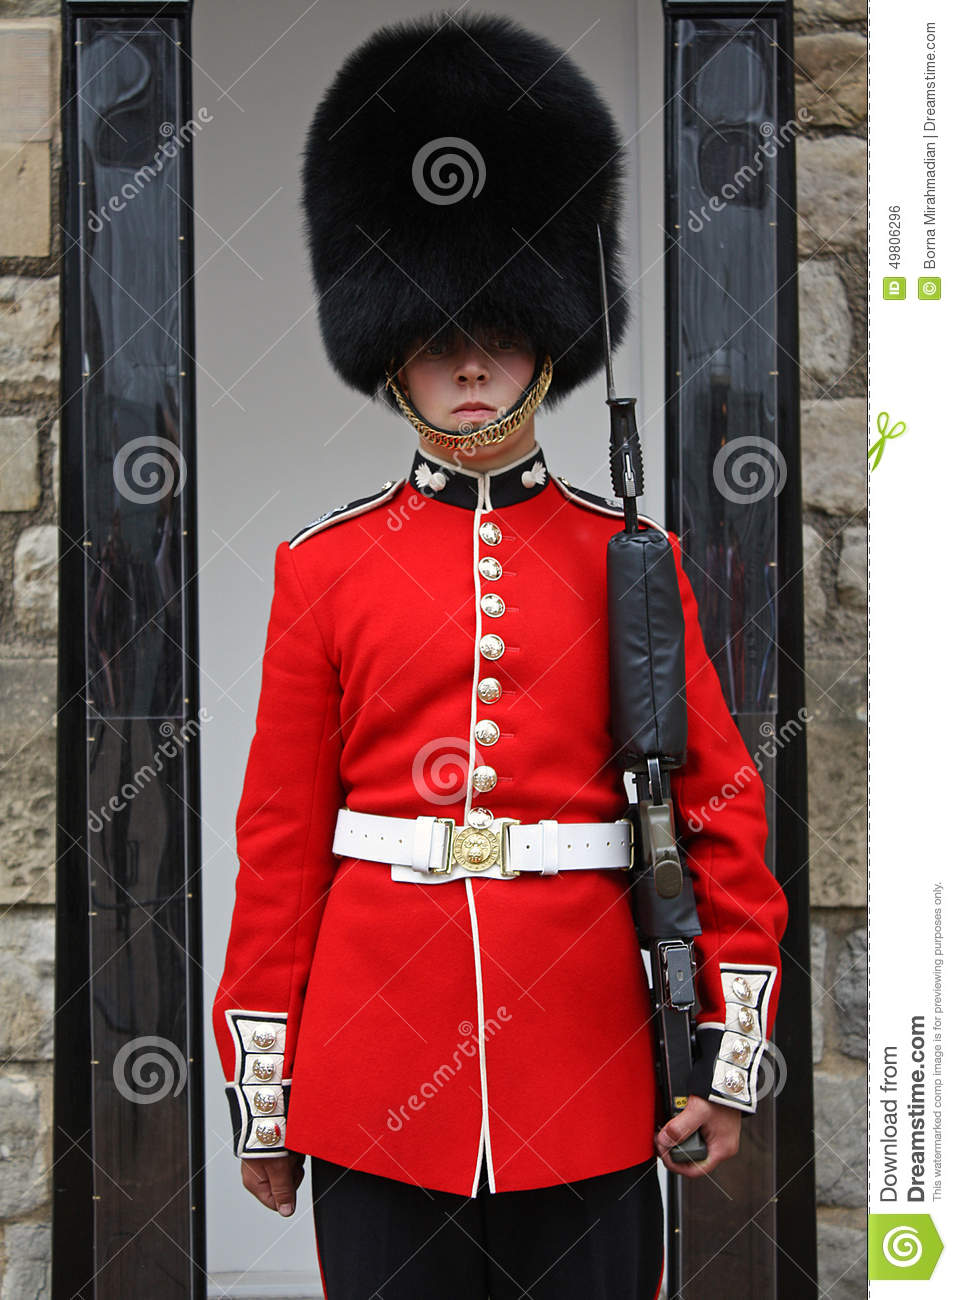 Welsh Guards Wikipdia